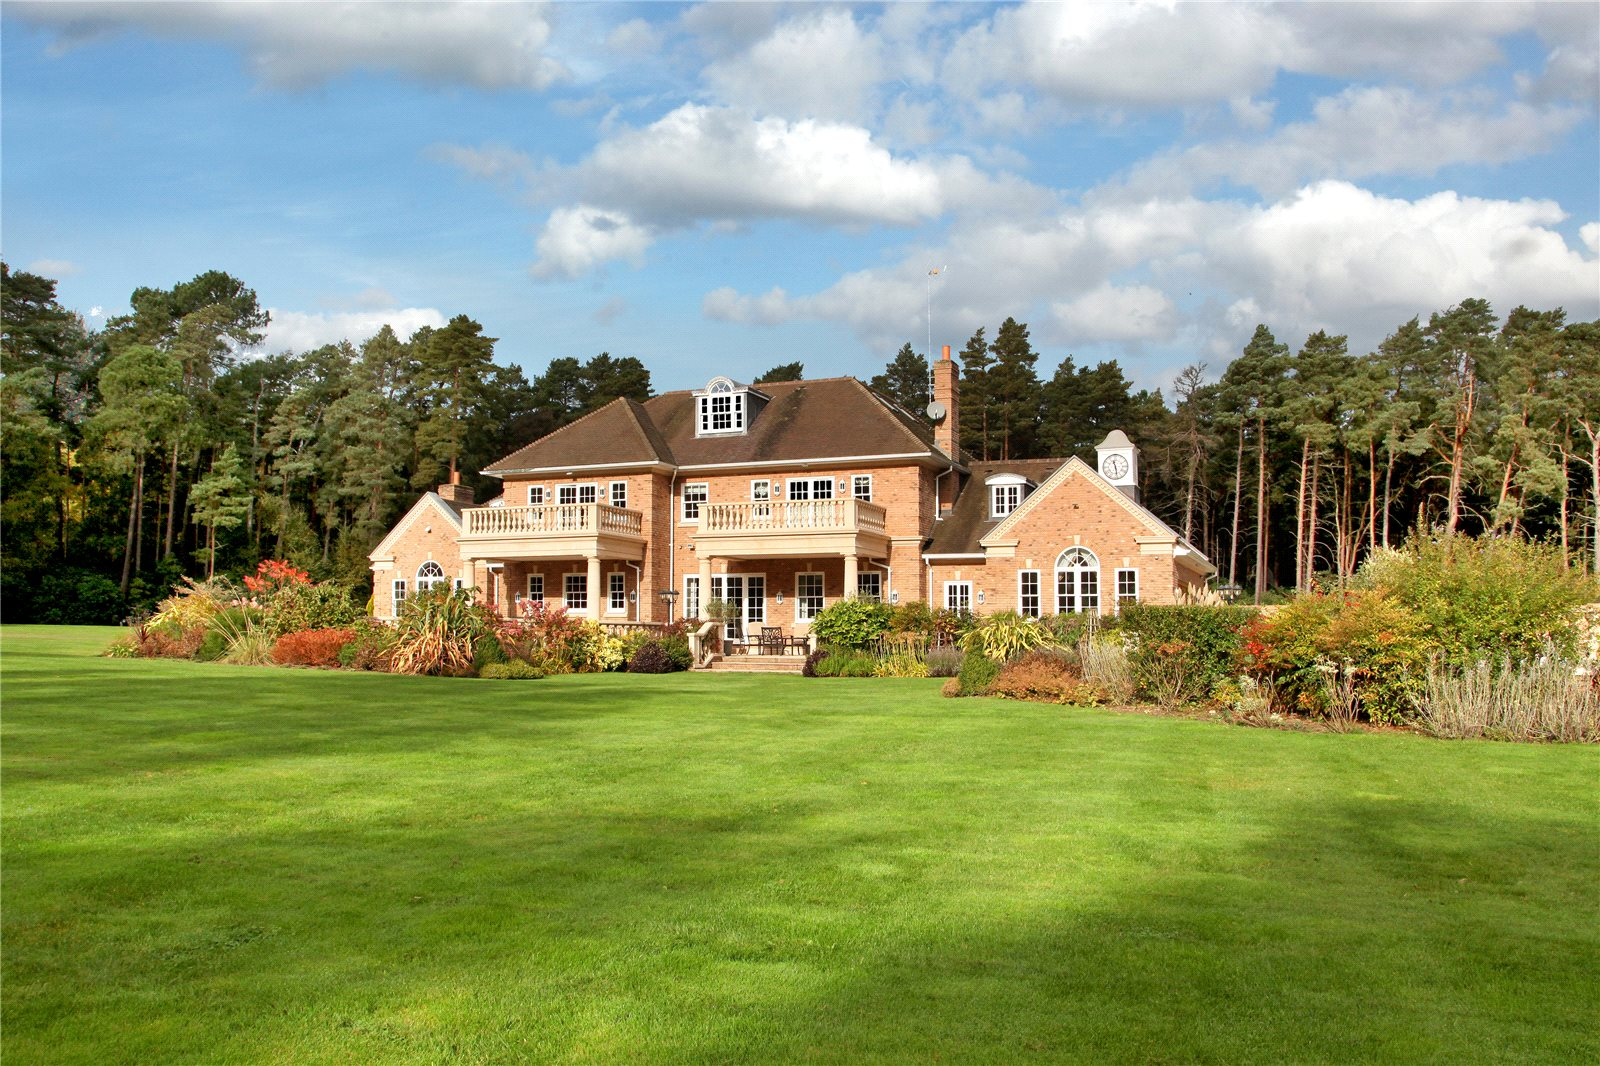 Single Family Home for Sale at Hatton Hill, Windlesham, Surrey, GU20 Windlesham, England